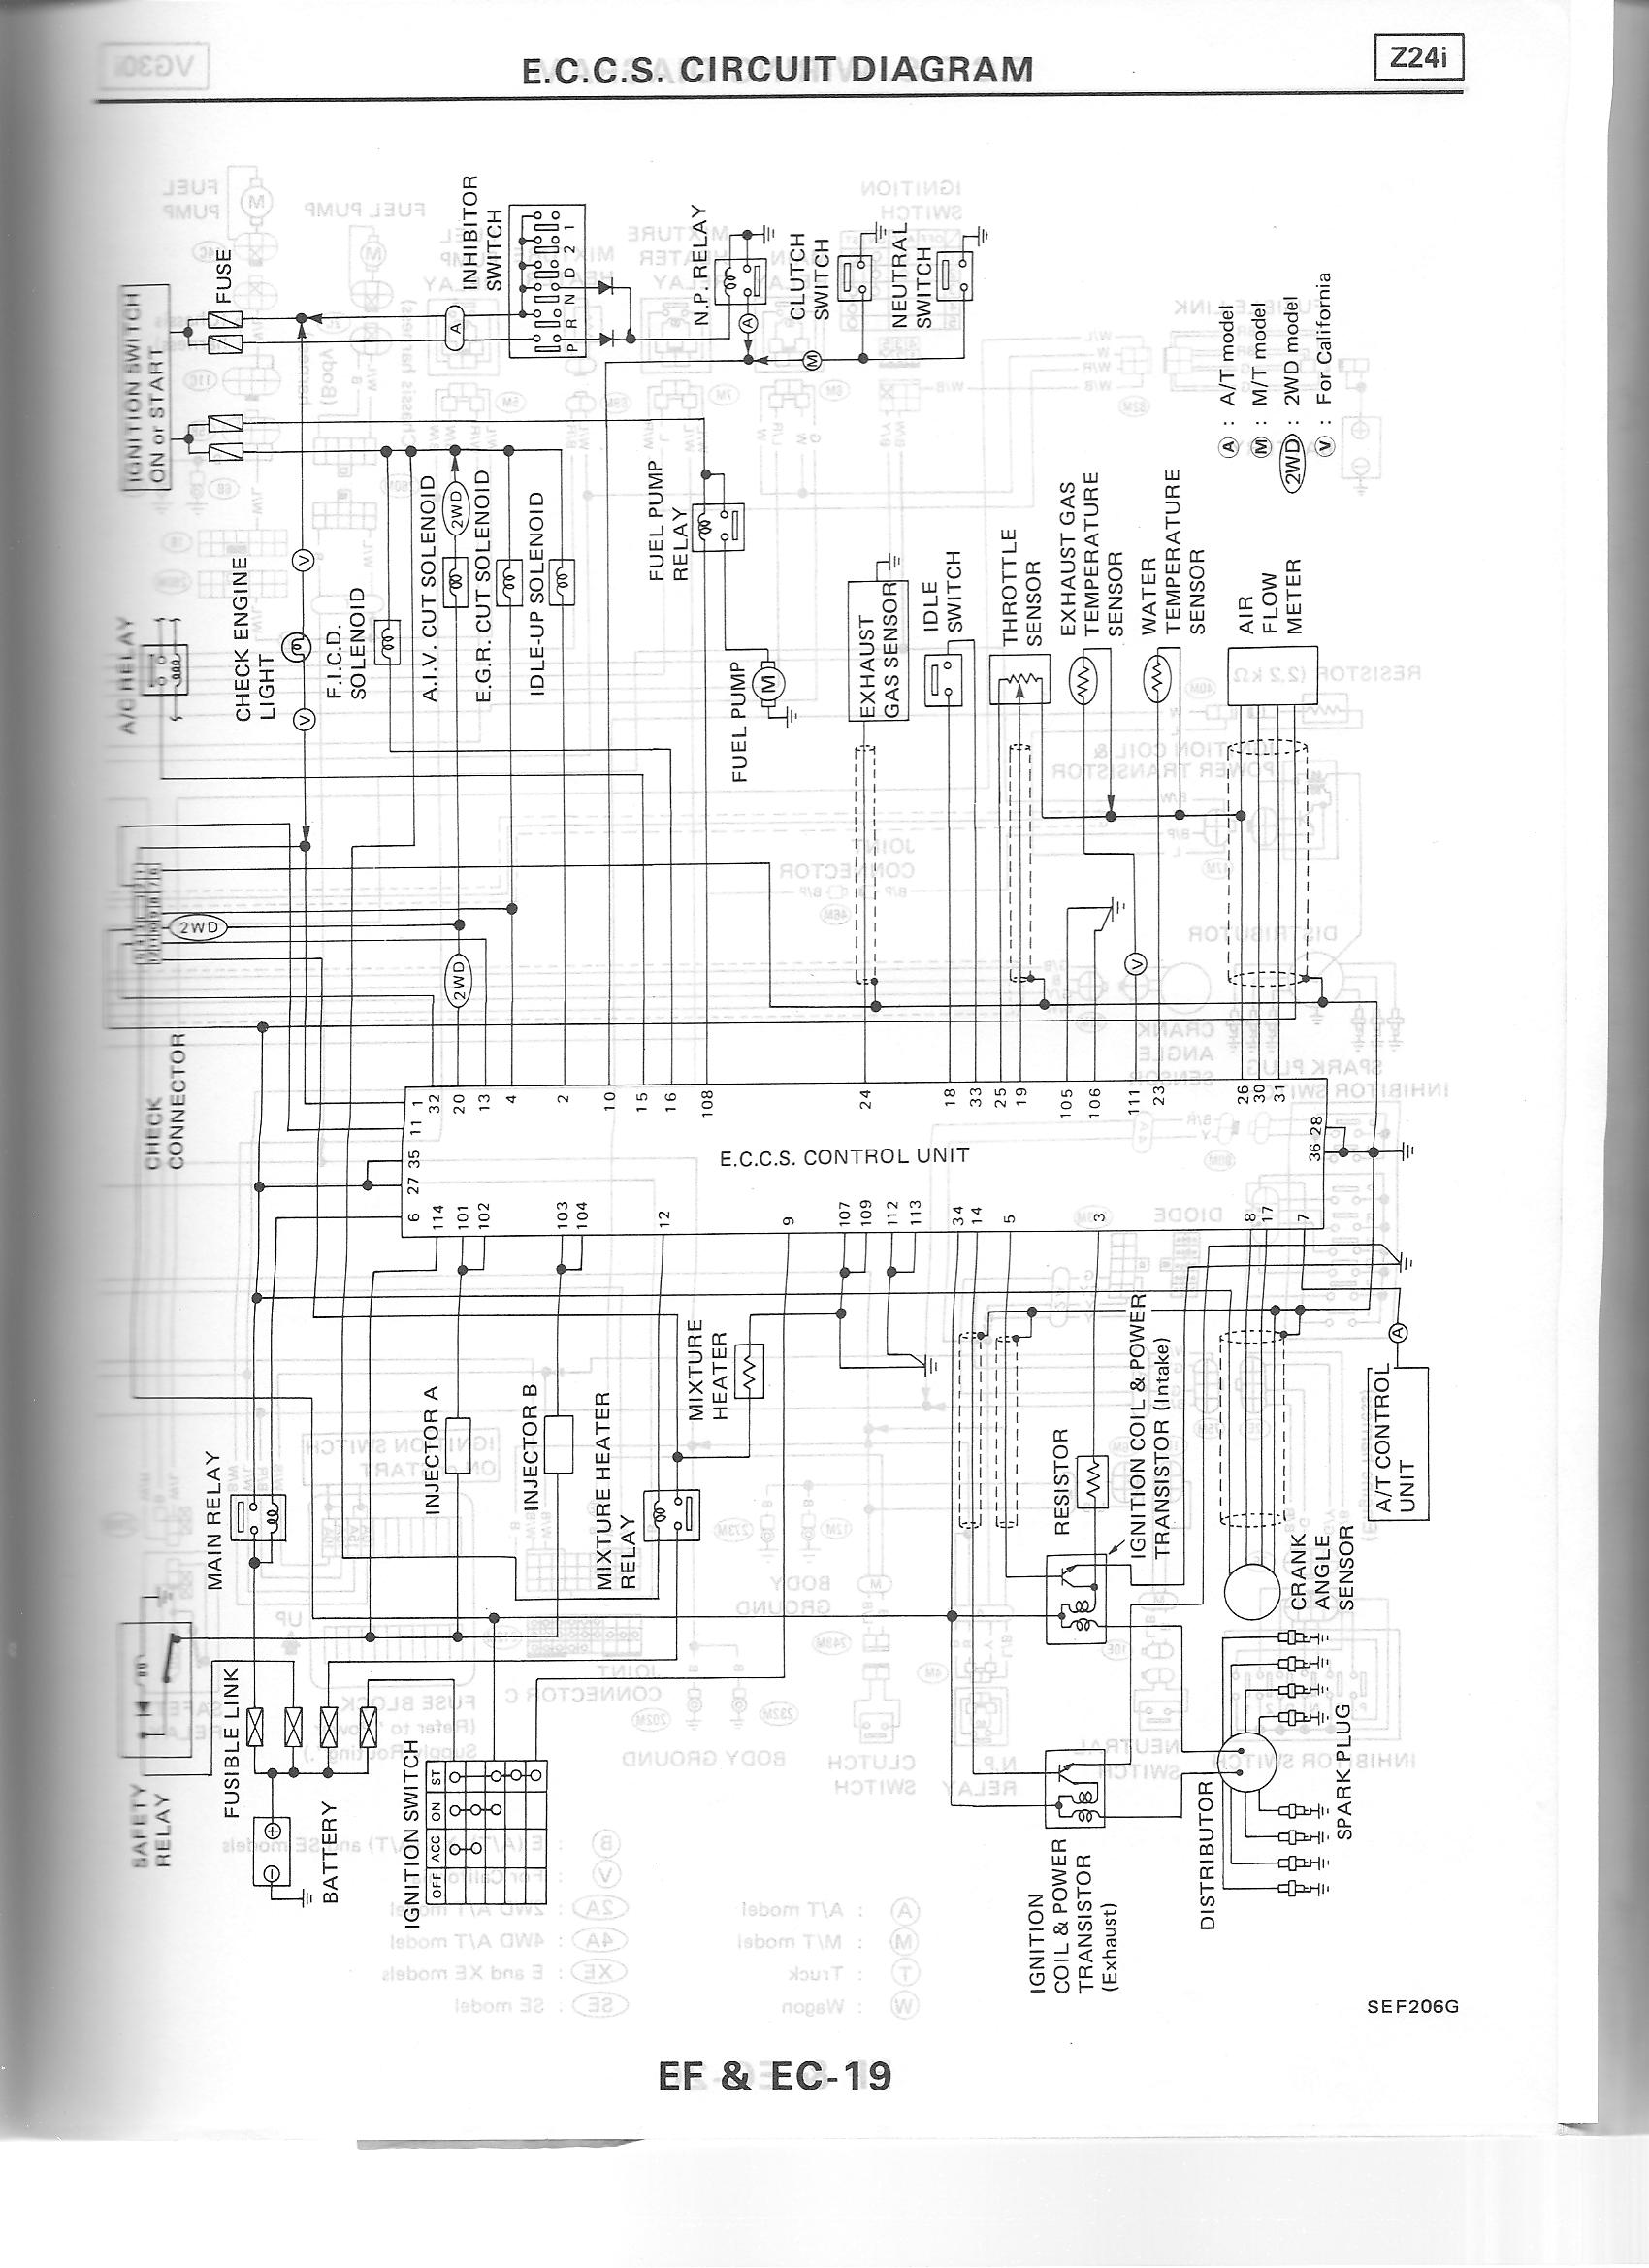 Nissan Nut 91 240sx Injector Wire Diagram 1988 Eccs Wiring